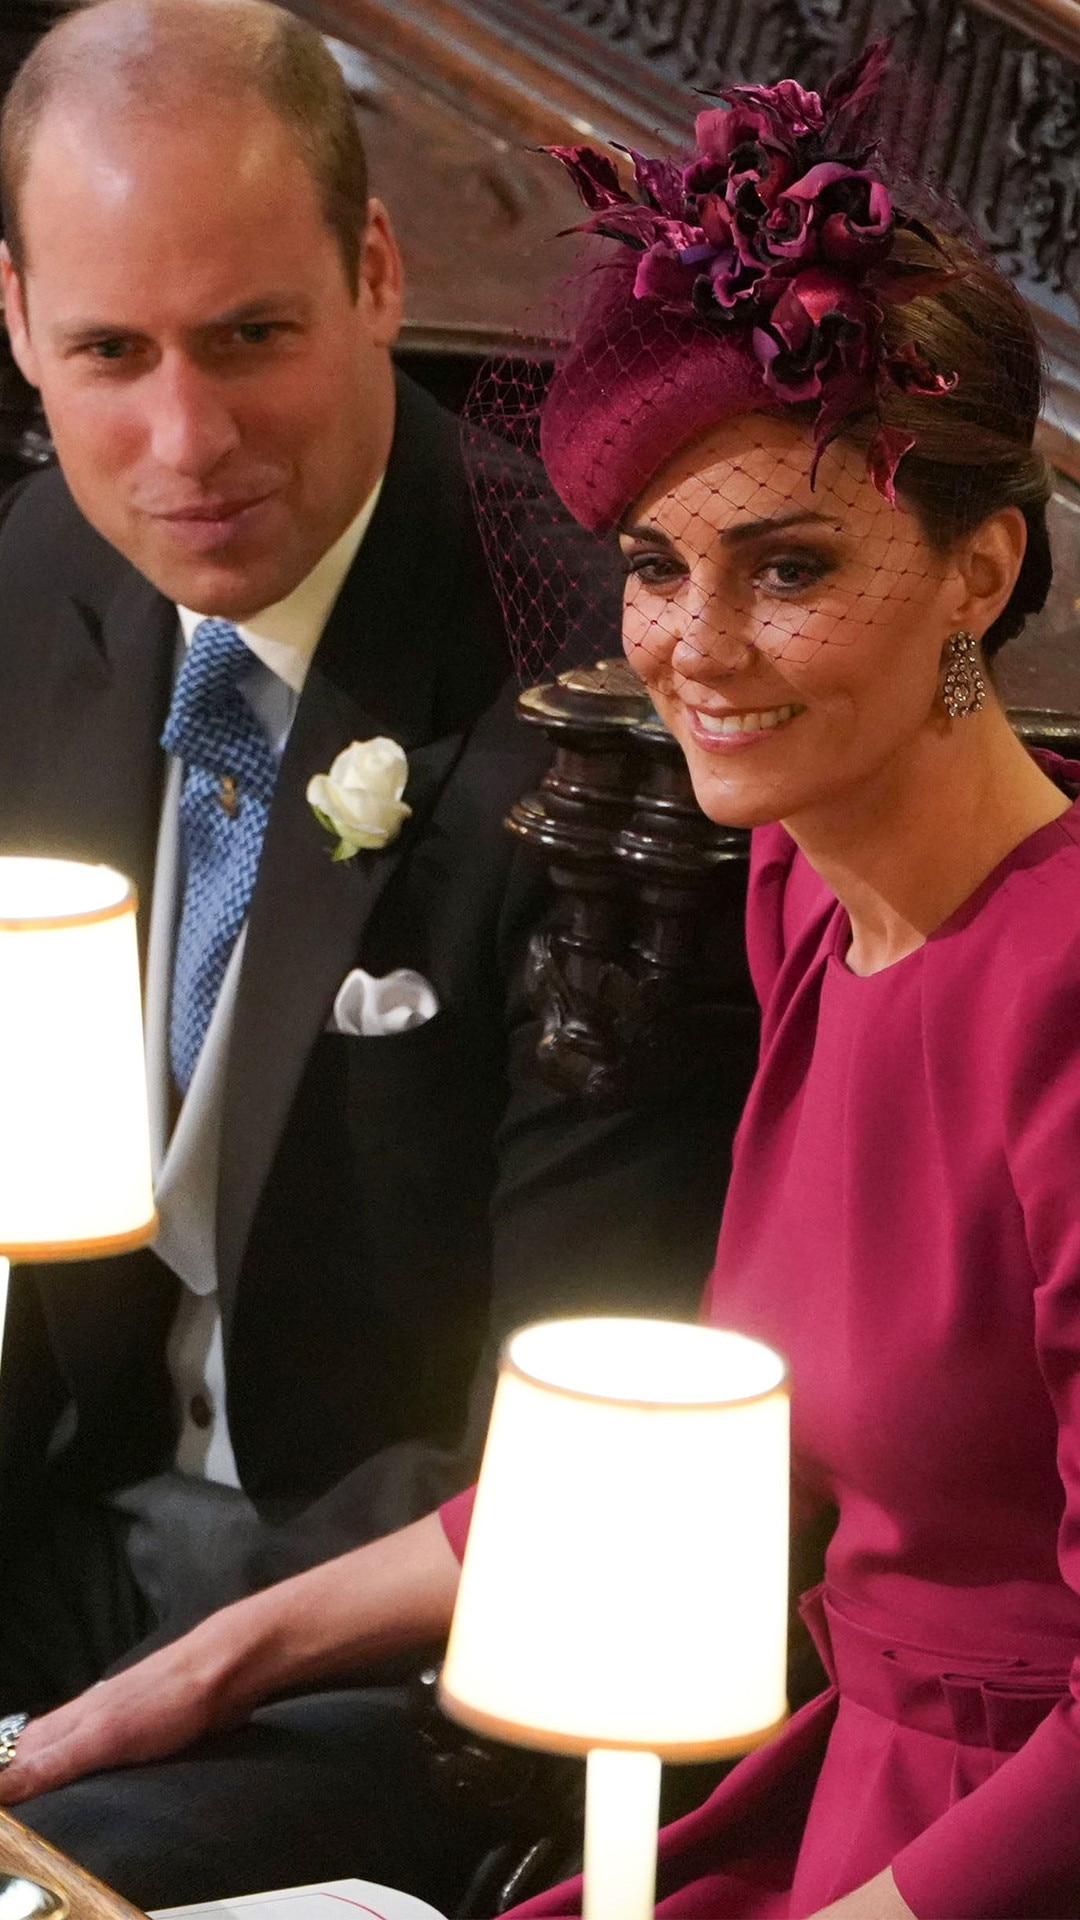 Prince William Kate Middleton From Princess Eugenie And Jack